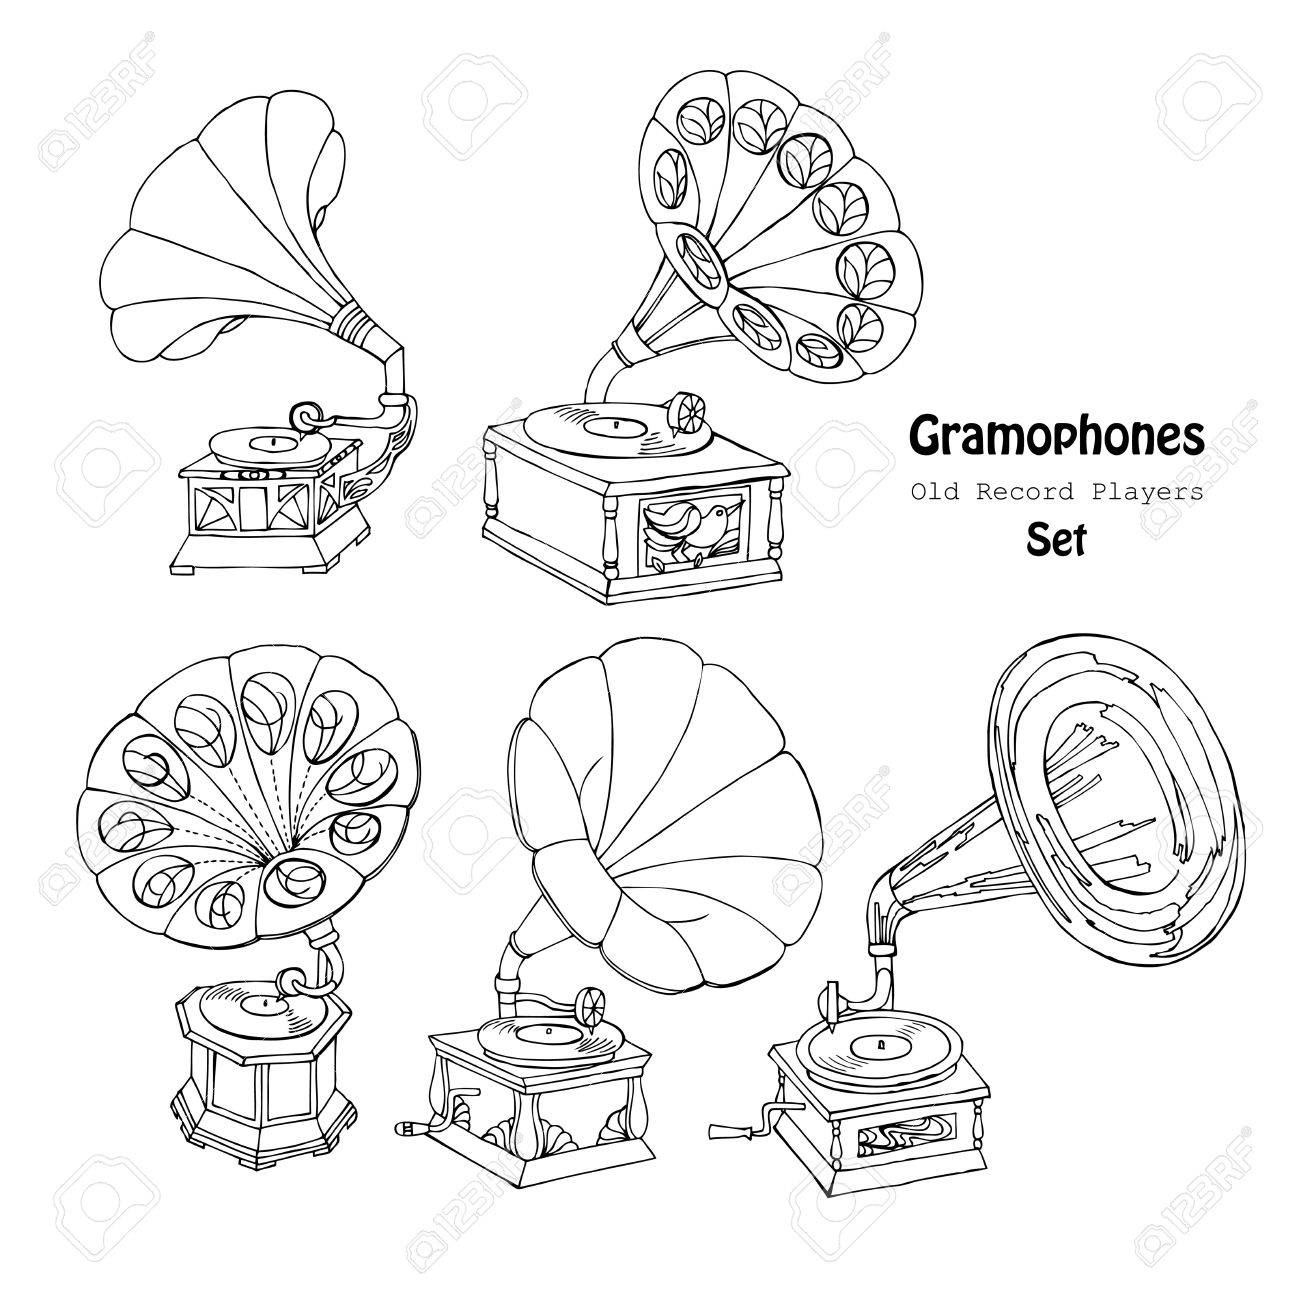 Hand drawn sketches old record player vector music illustration stock vector